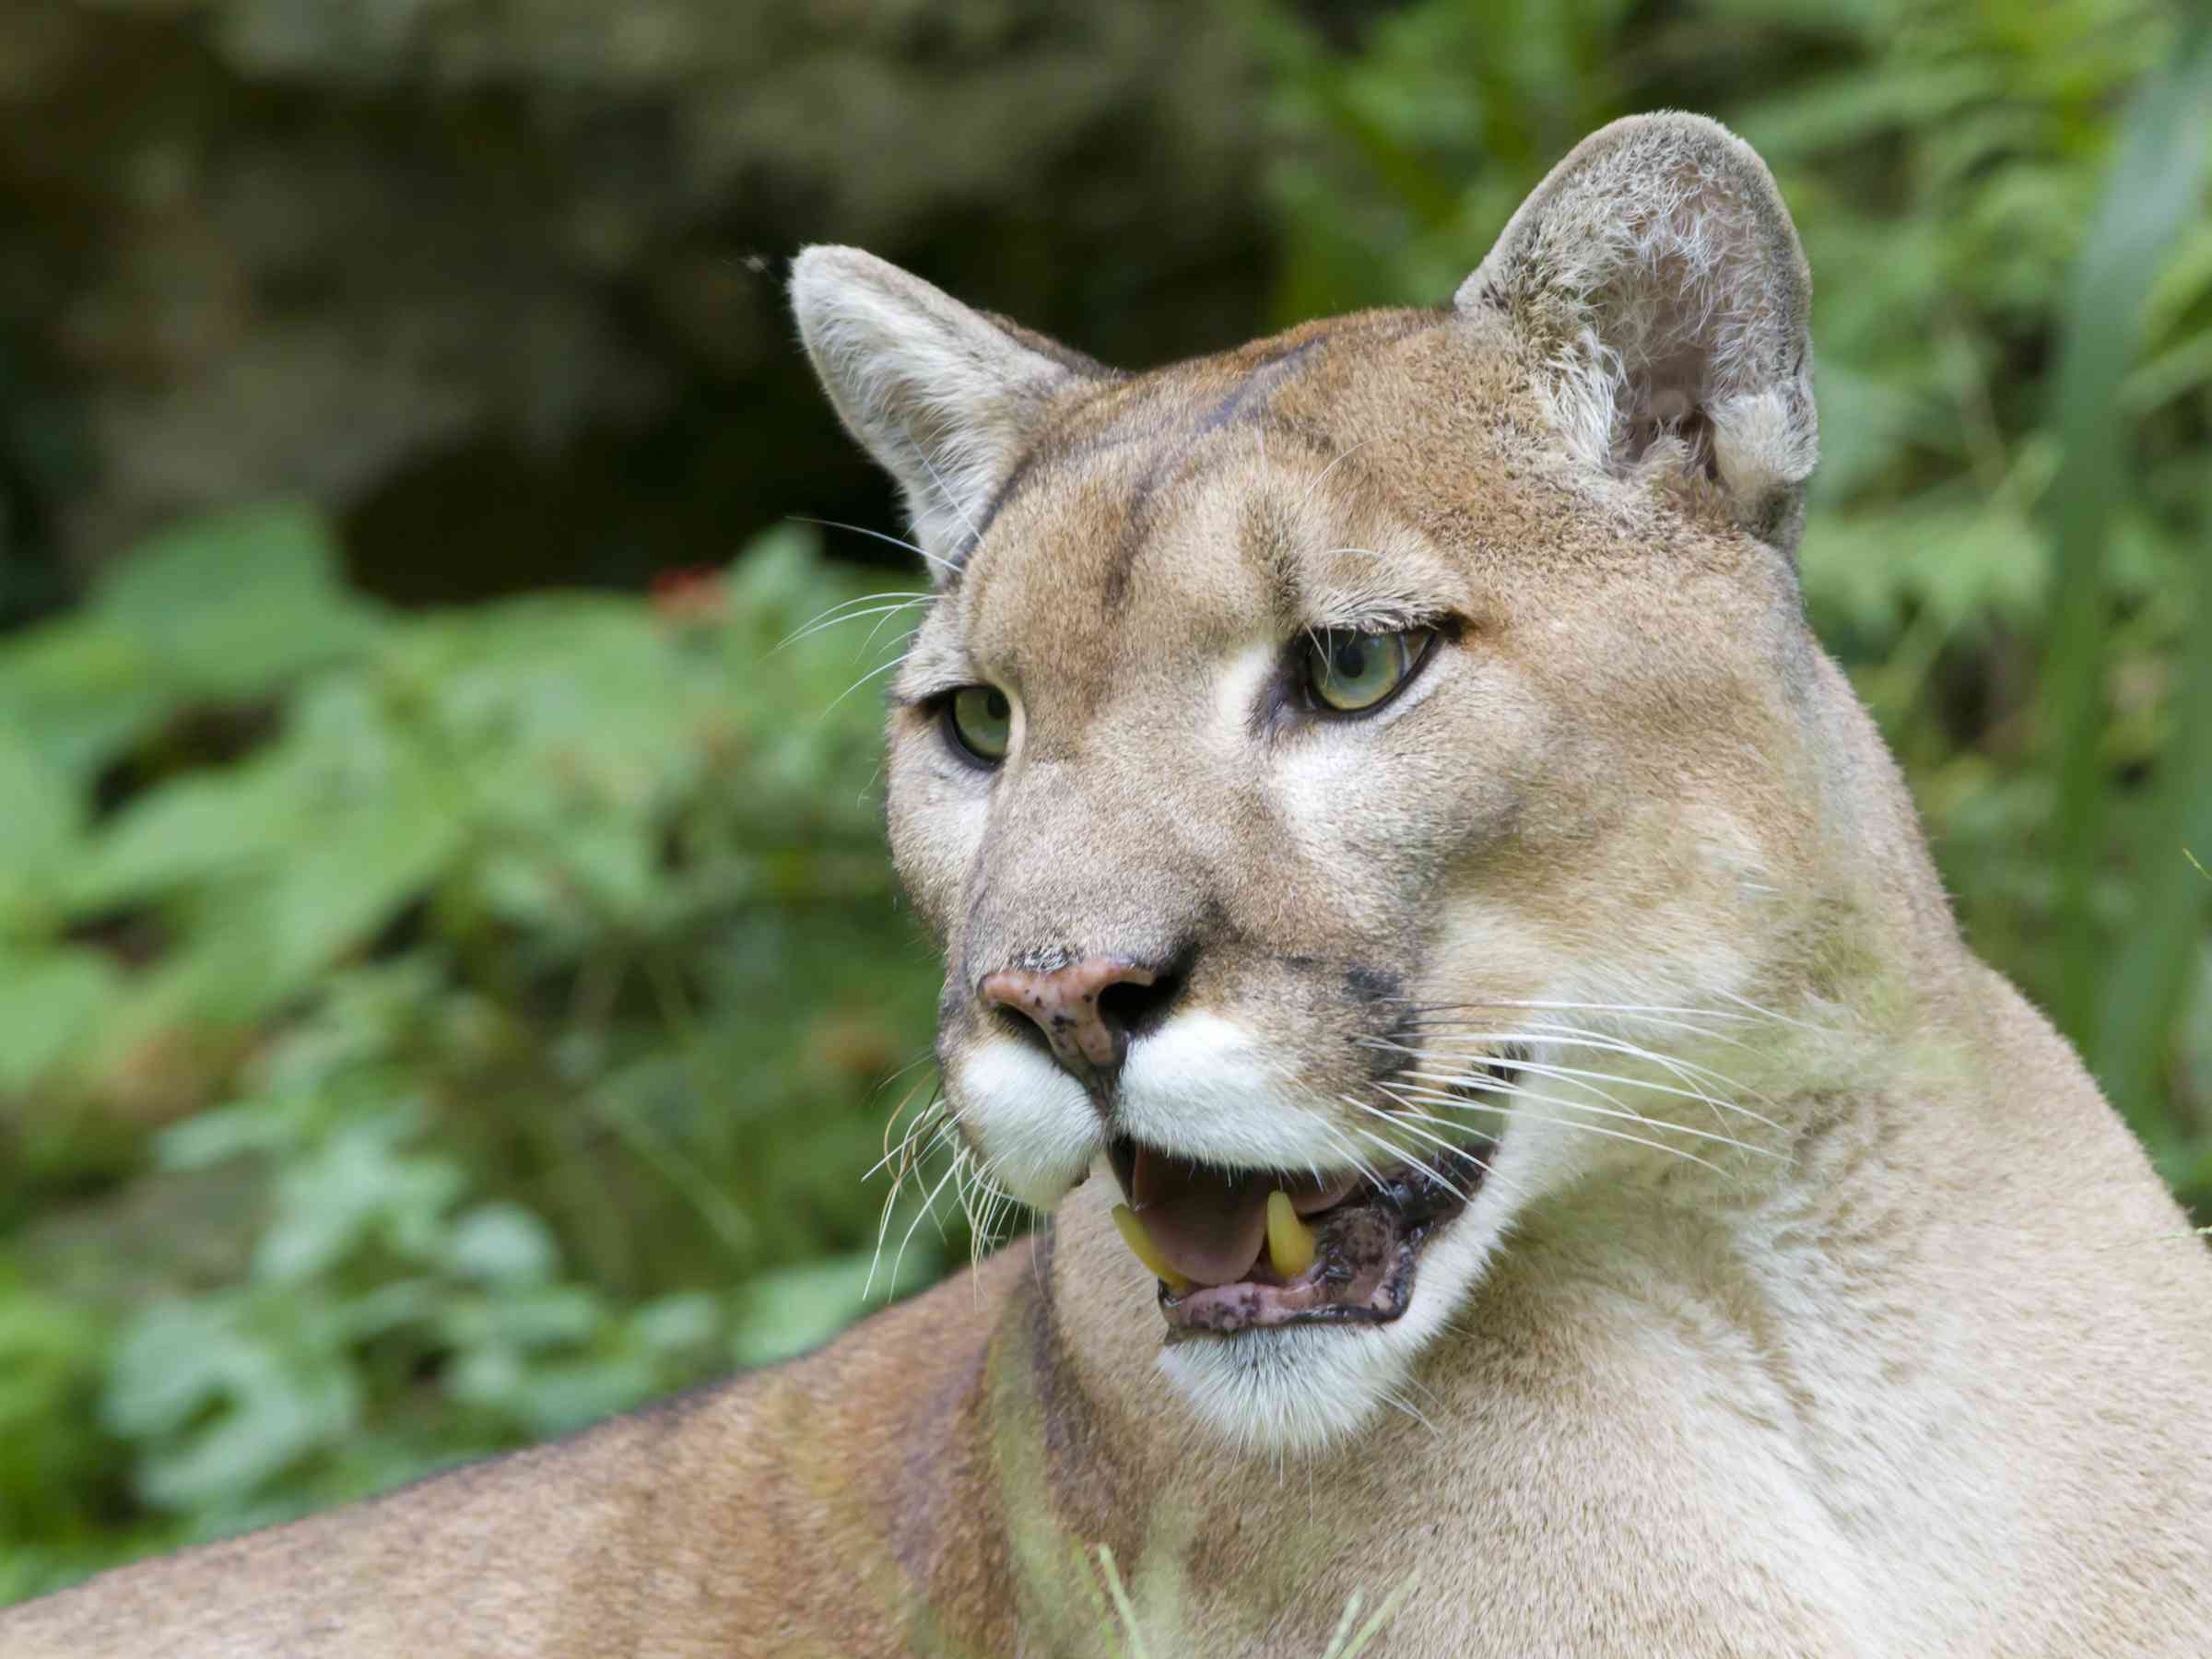 An endangered Florida panther in the Florida Everglades